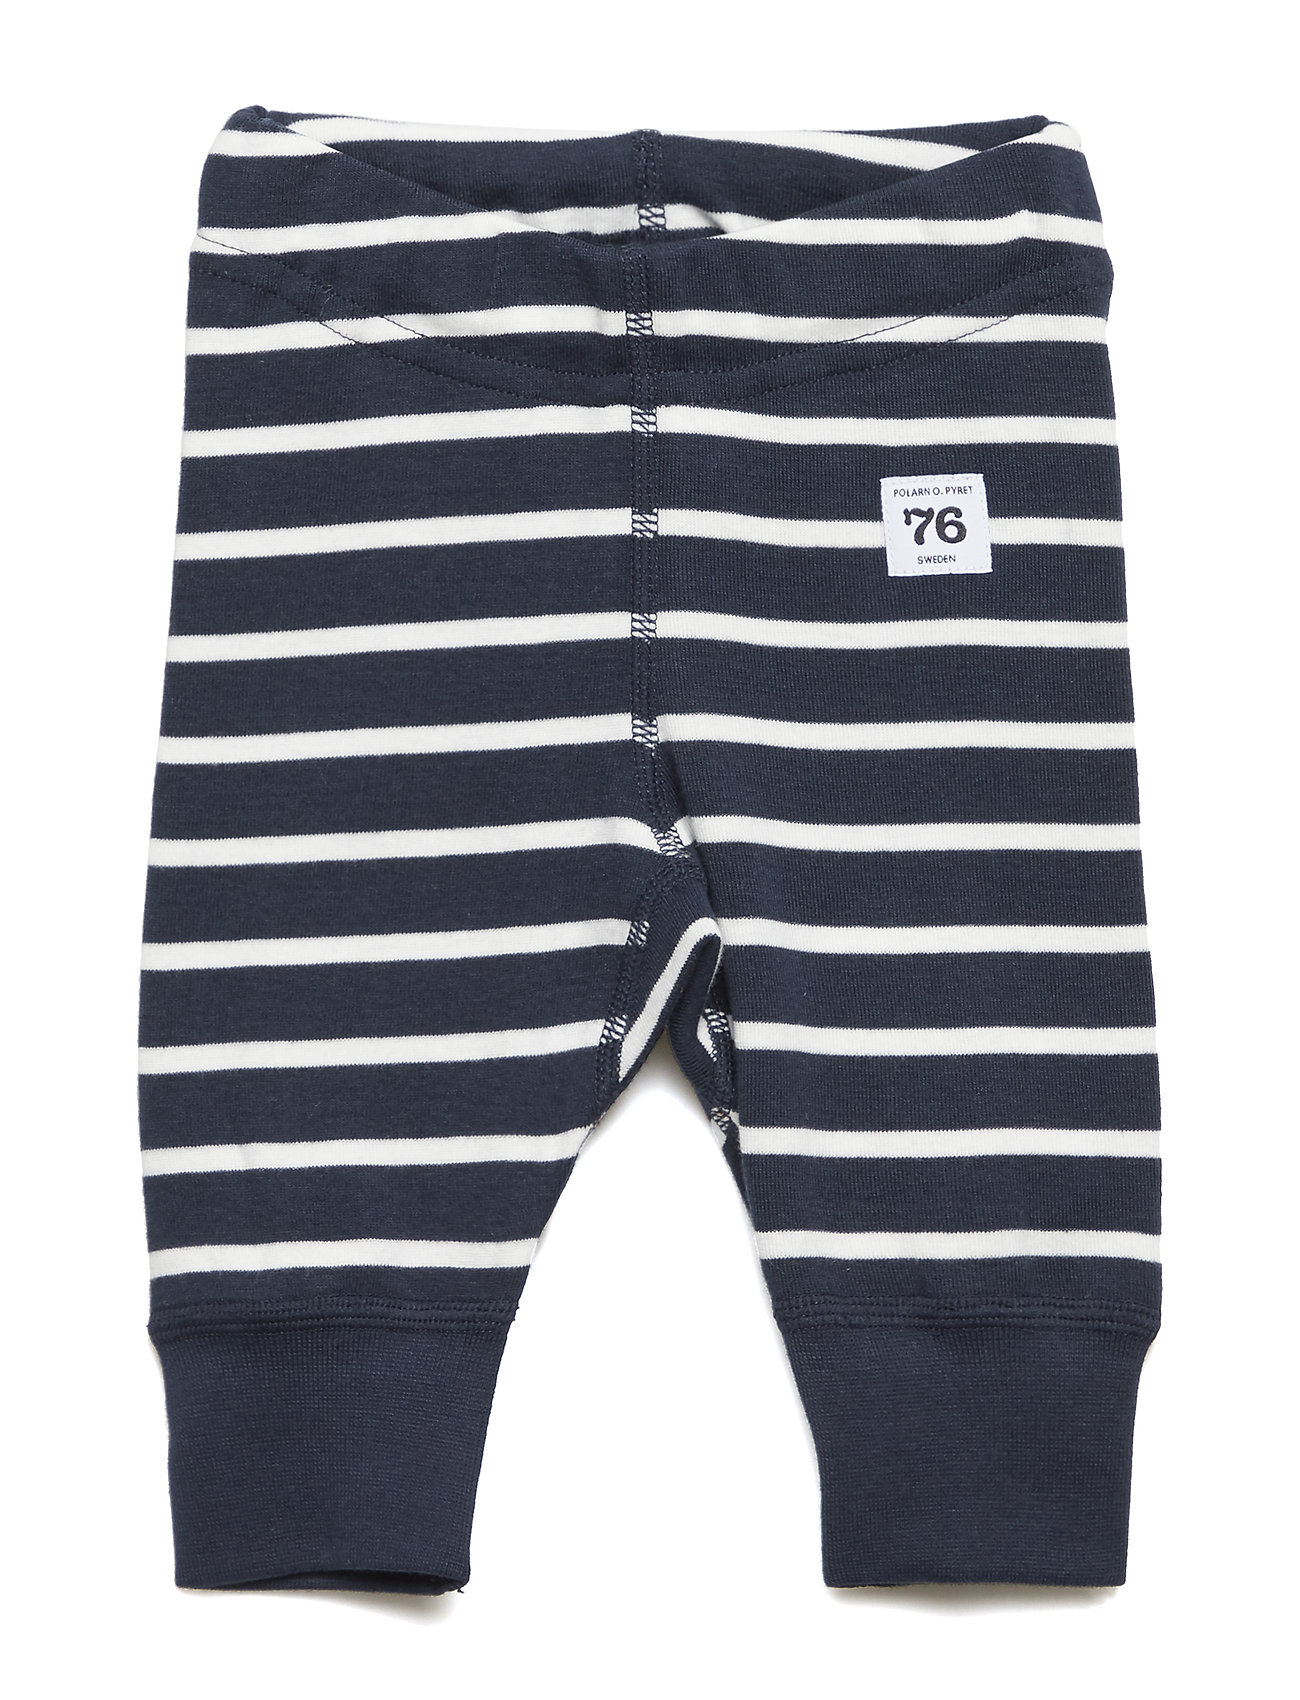 Polarn O. Pyret Long Johns PO.P Stripe Newborn - DARK SAPPHIRE